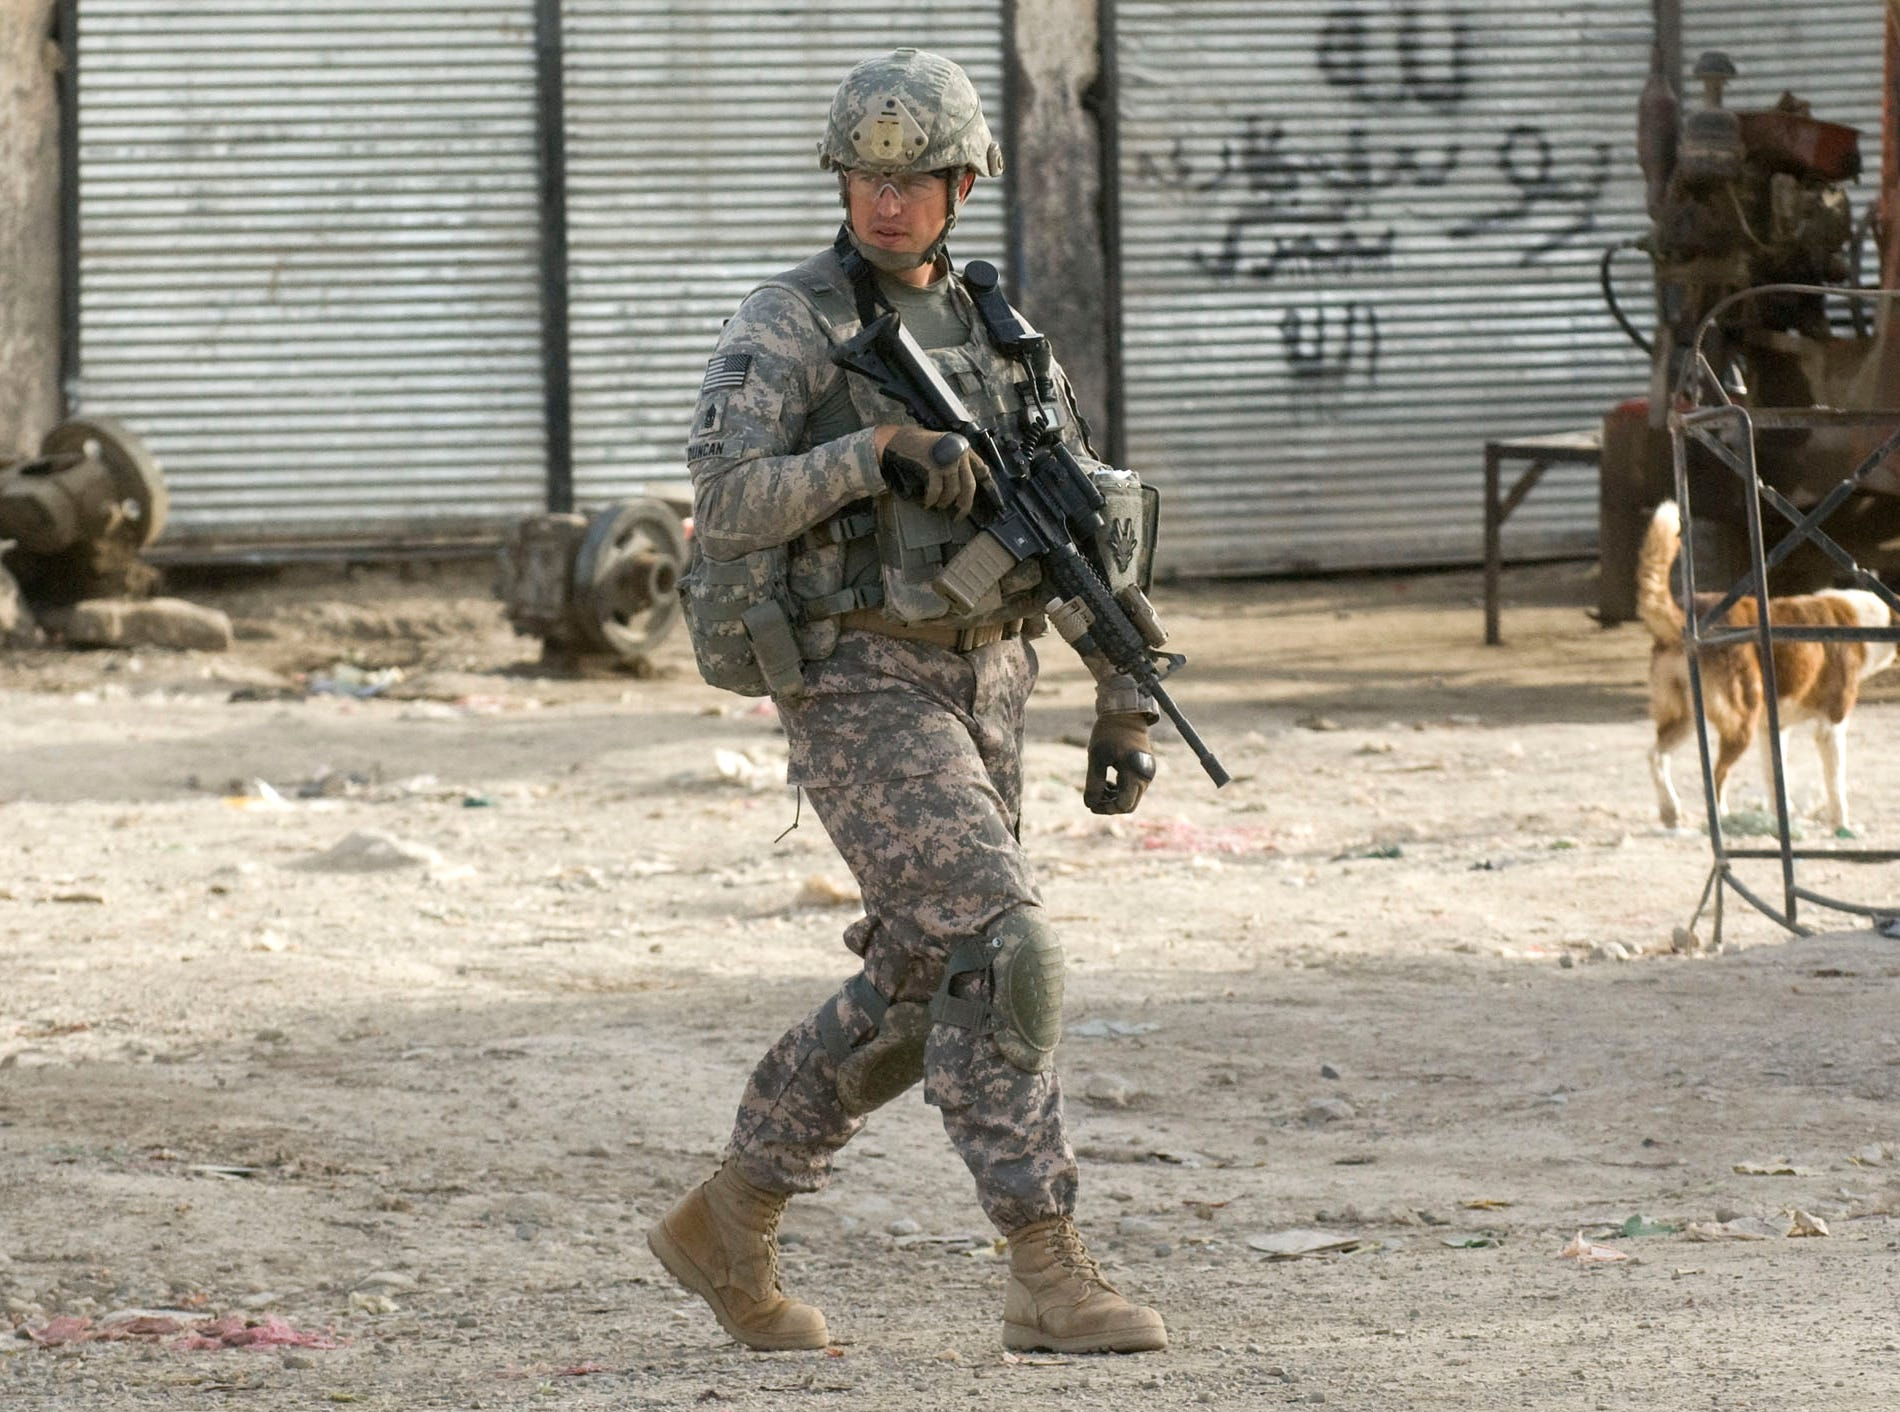 Vermont National Guard 1st Sgt. Eric Duncan of Northfield, Vt., checks on his fellow soldiers' positions as Delta Company conducts a raid on a suspected IED and weapons cache in downtown Gardez, Paktia Province, Afghanistan, on Friday morning, September 17, 2010. No weapons or bomb-making materials were found, but the raid was delayed hours after Afghan police failed to show up on time.